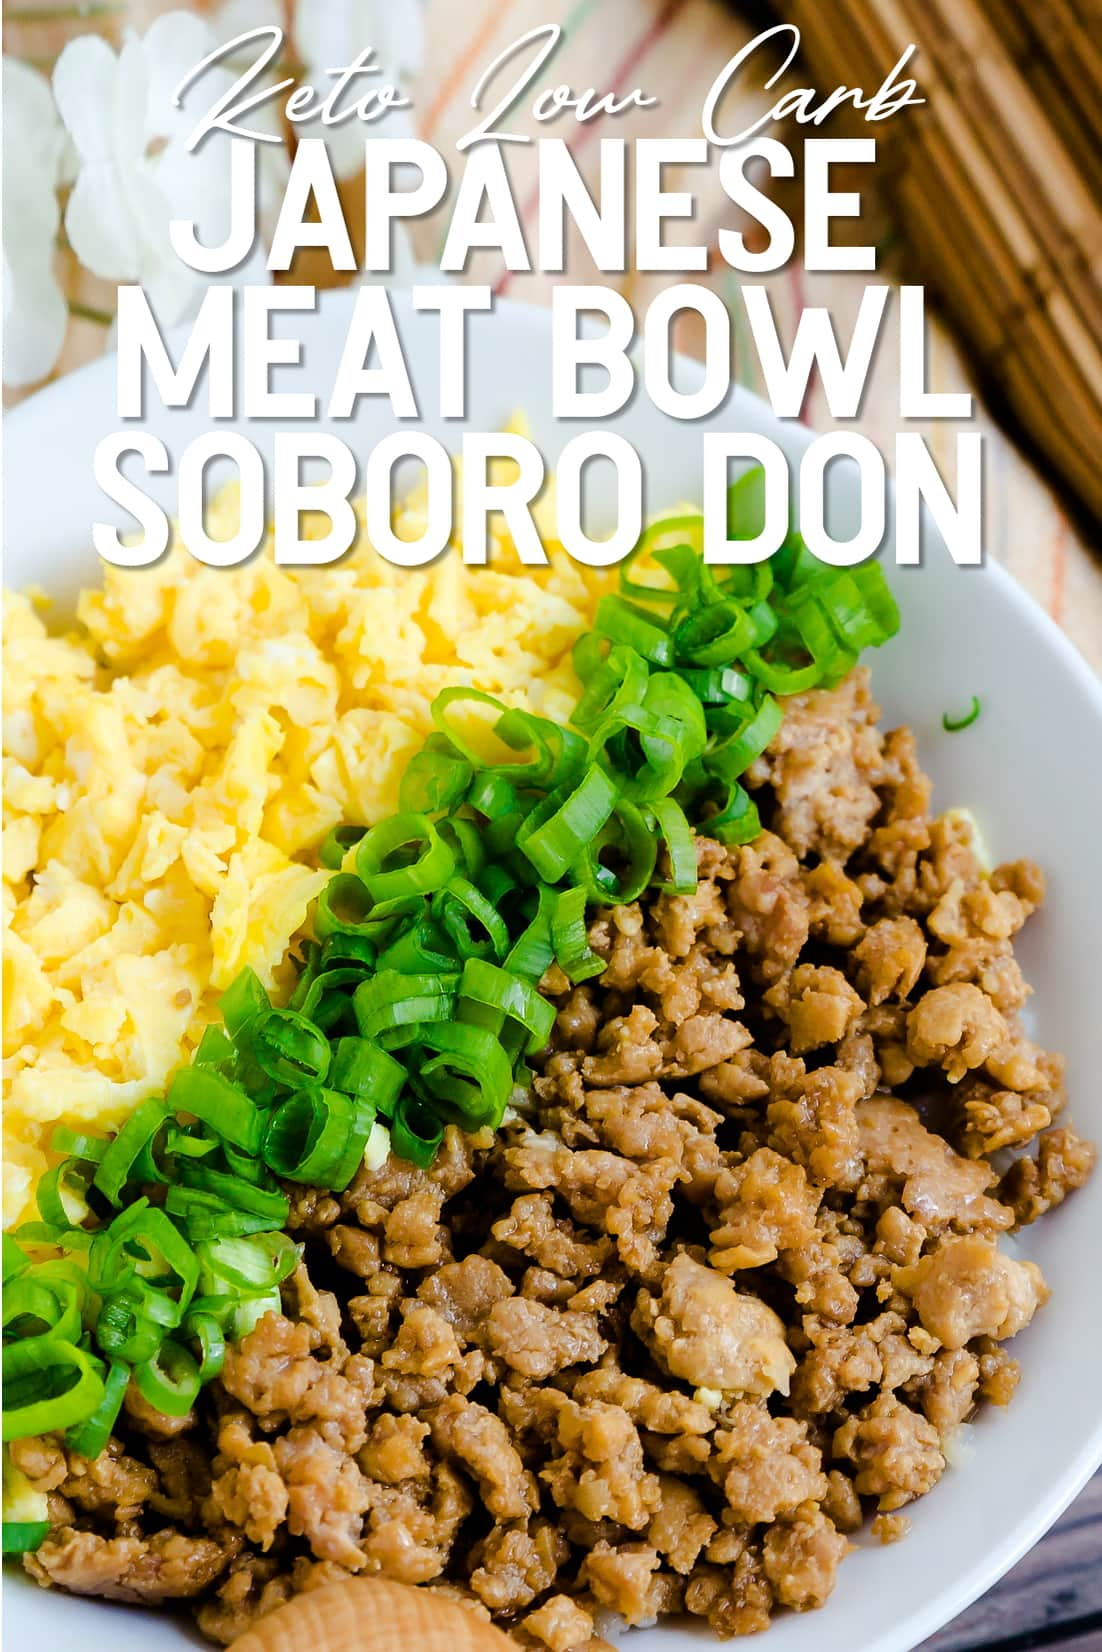 Japanese Ground Chicken Bowl Soboro Don served in a white bowl